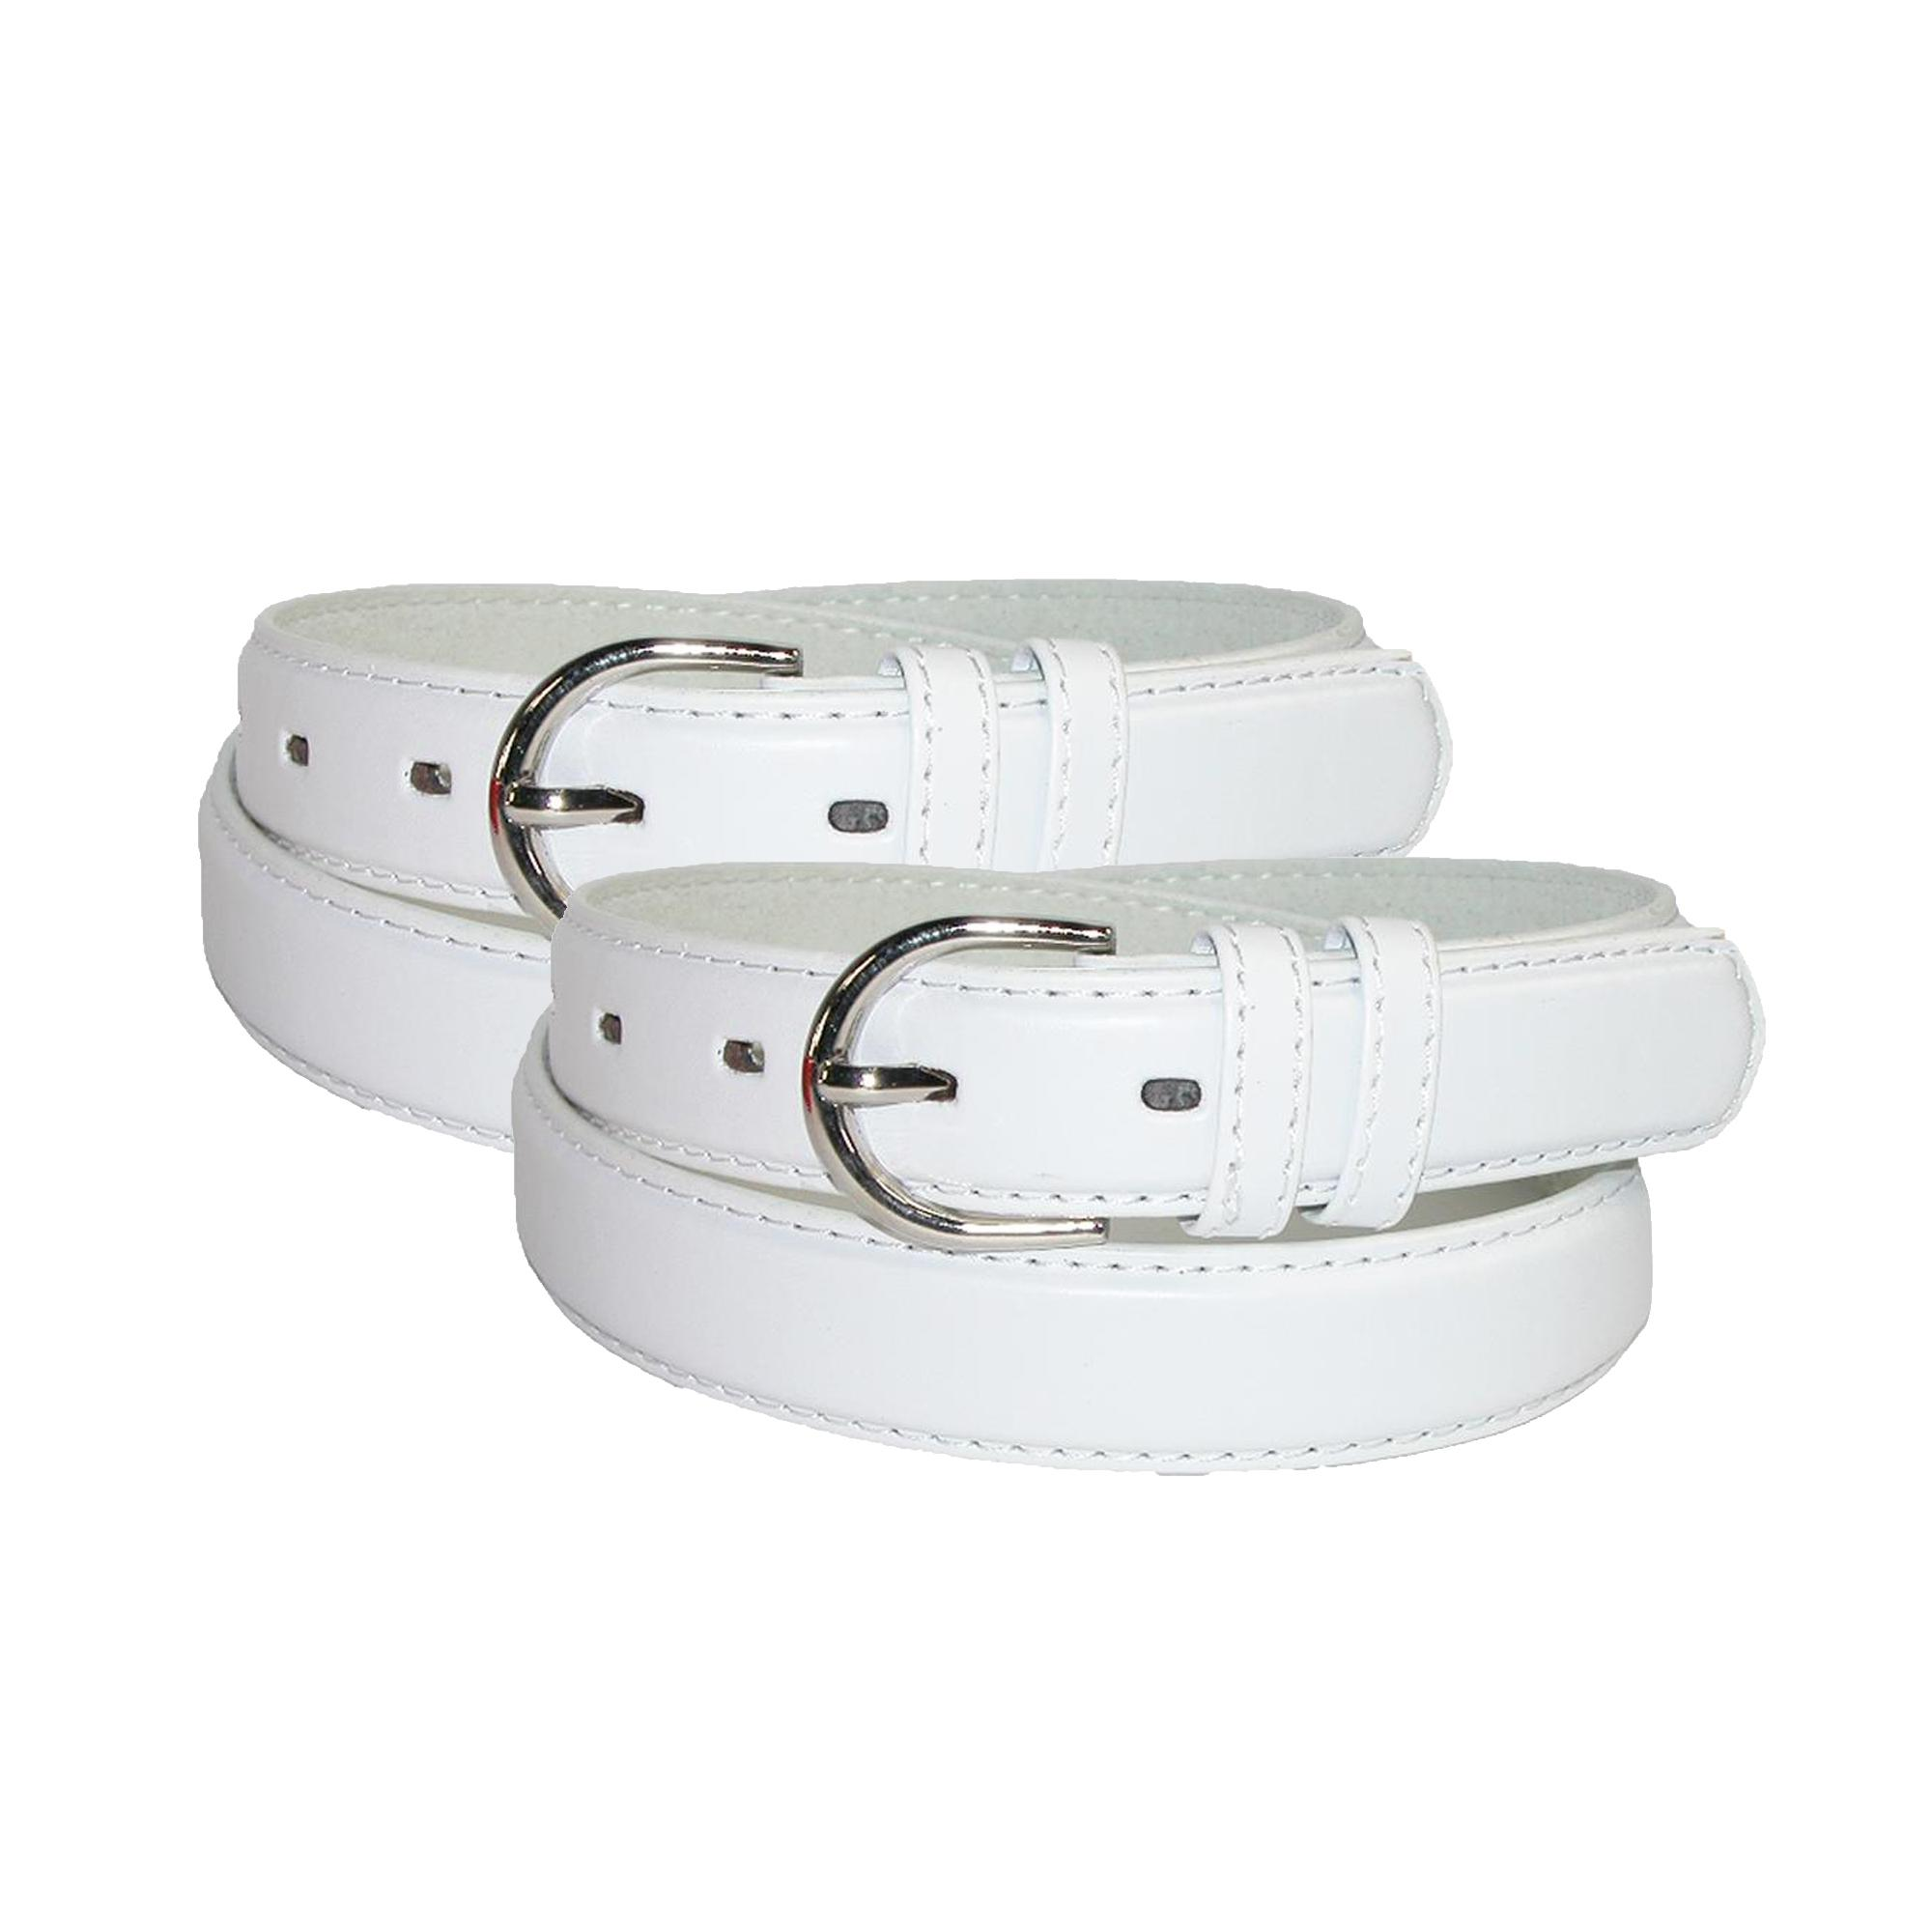 Ctm Womens Leather 1 1/8 Inch Dress Belt (pack Of 2)